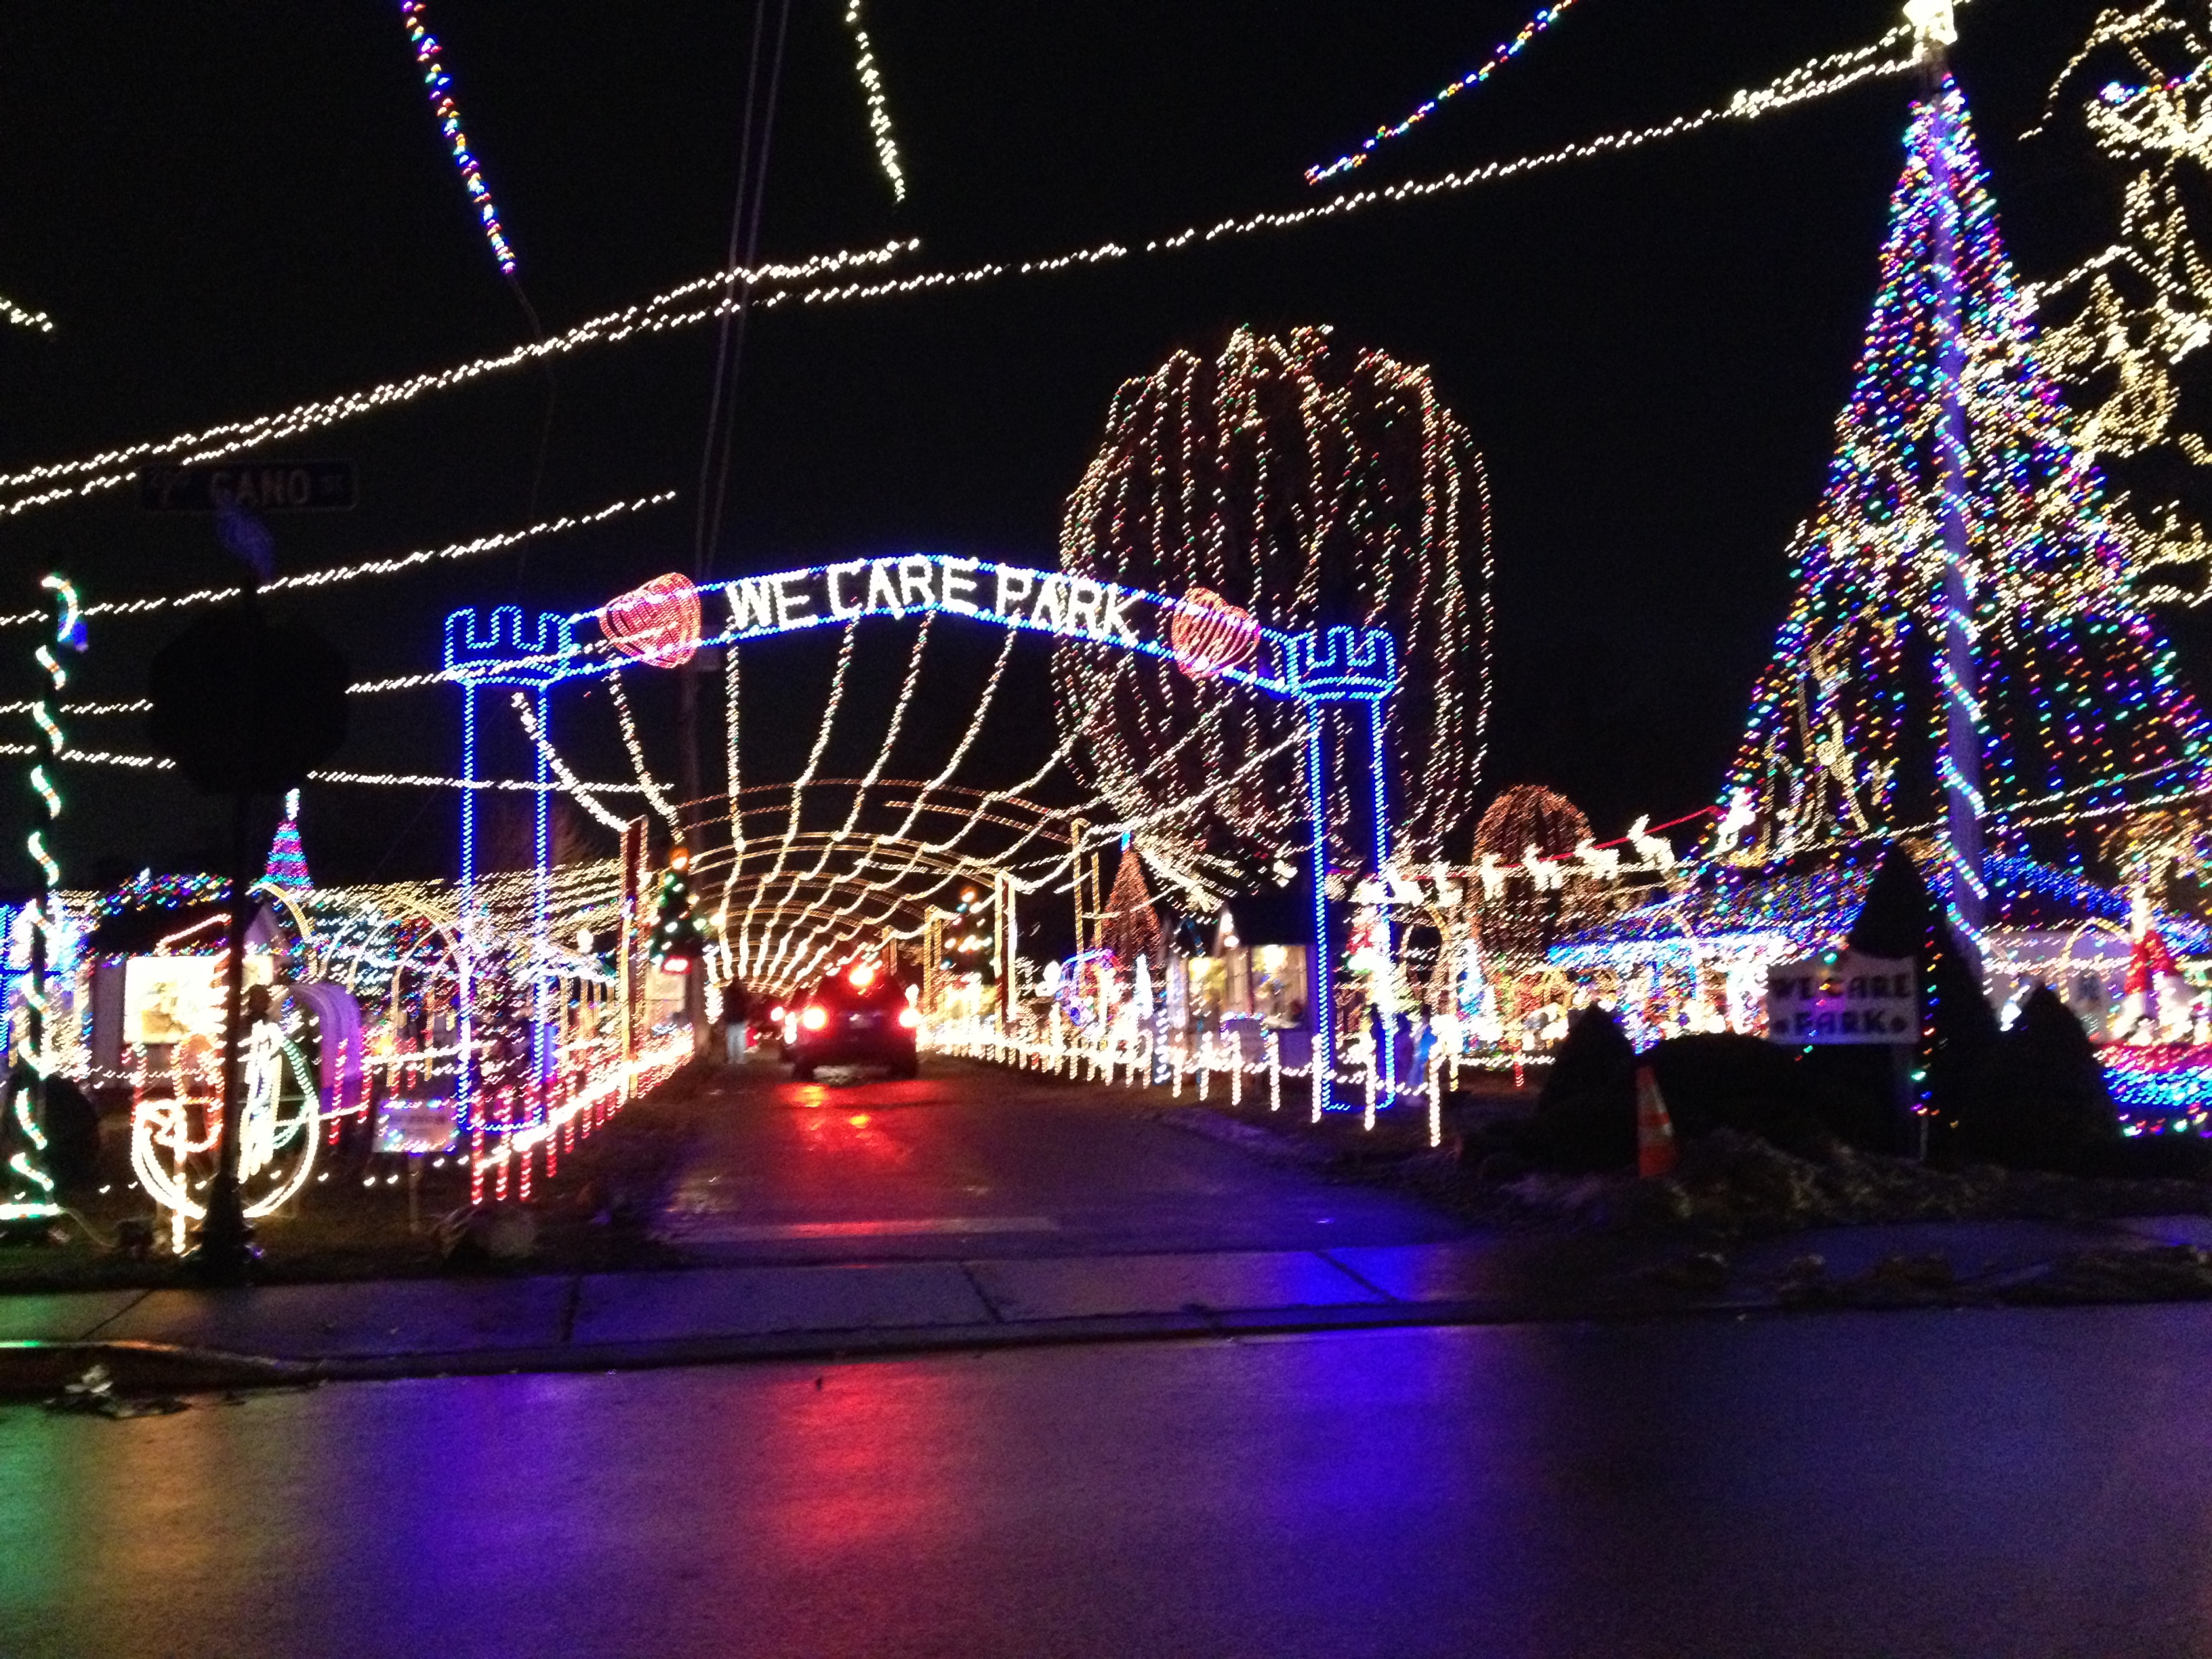 Kokomou0027s Holiday Light Displays · WeCarePark Pictures